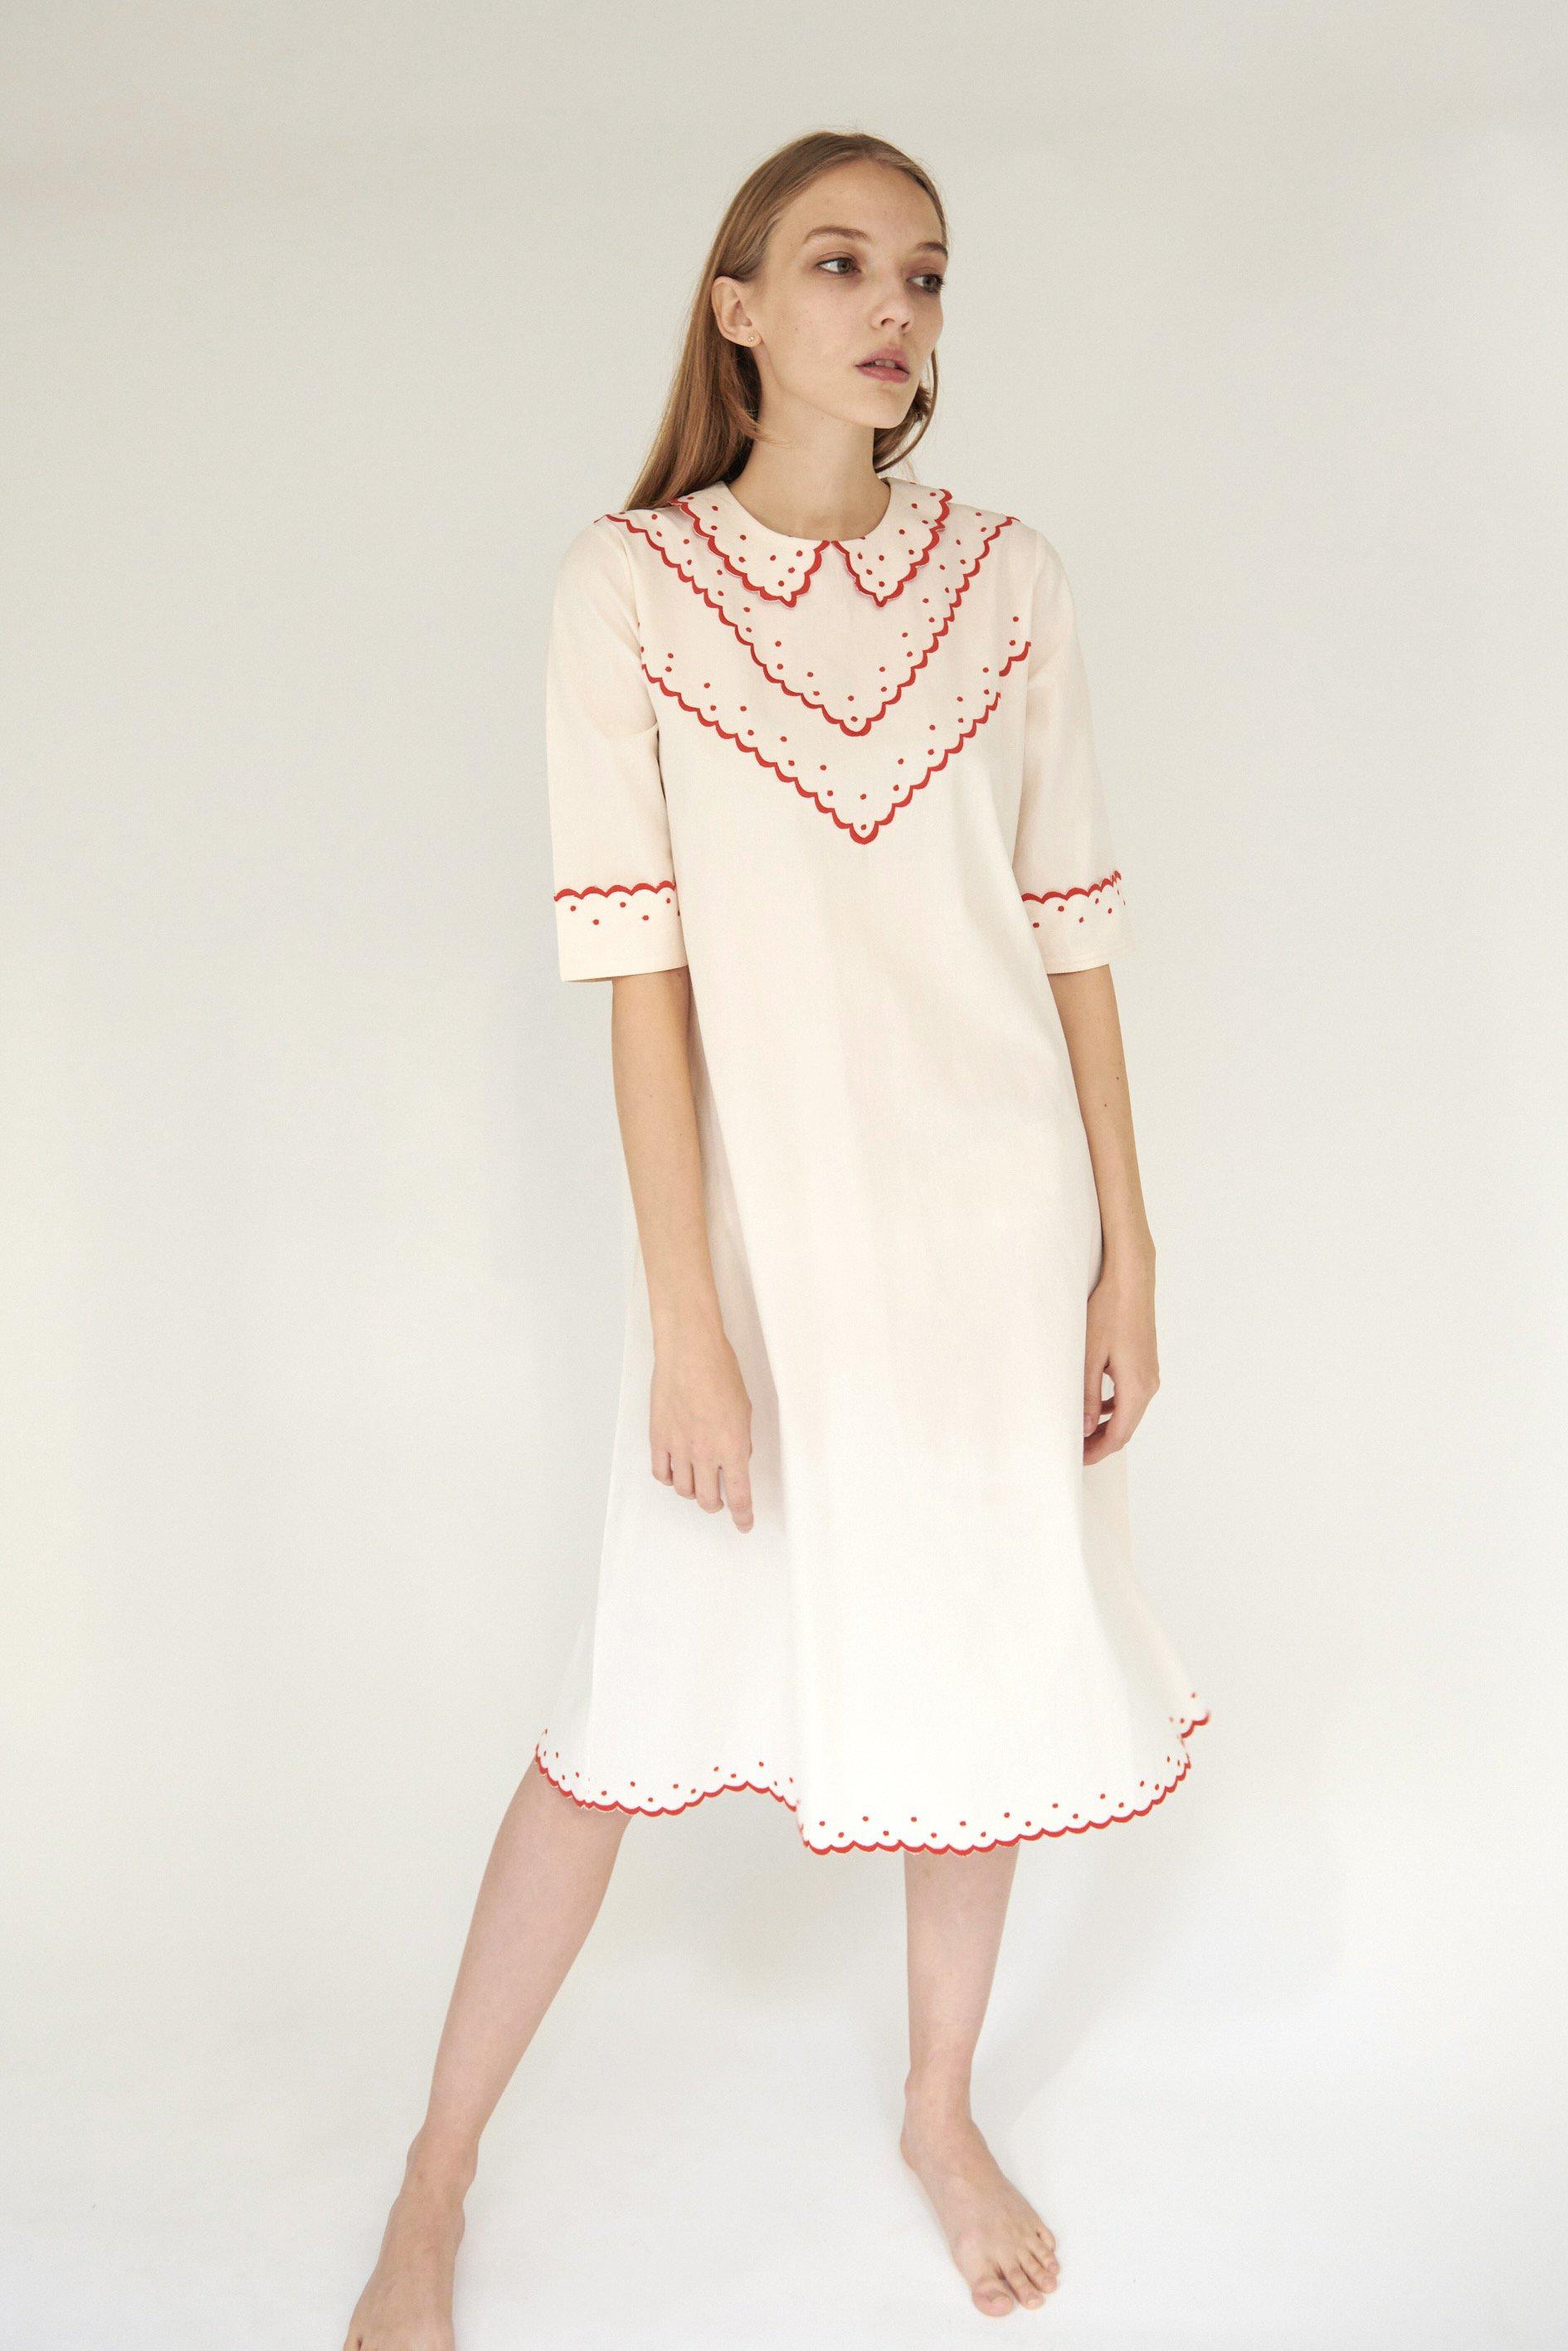 Shirley Dress in Cream with Red Embroidery 1